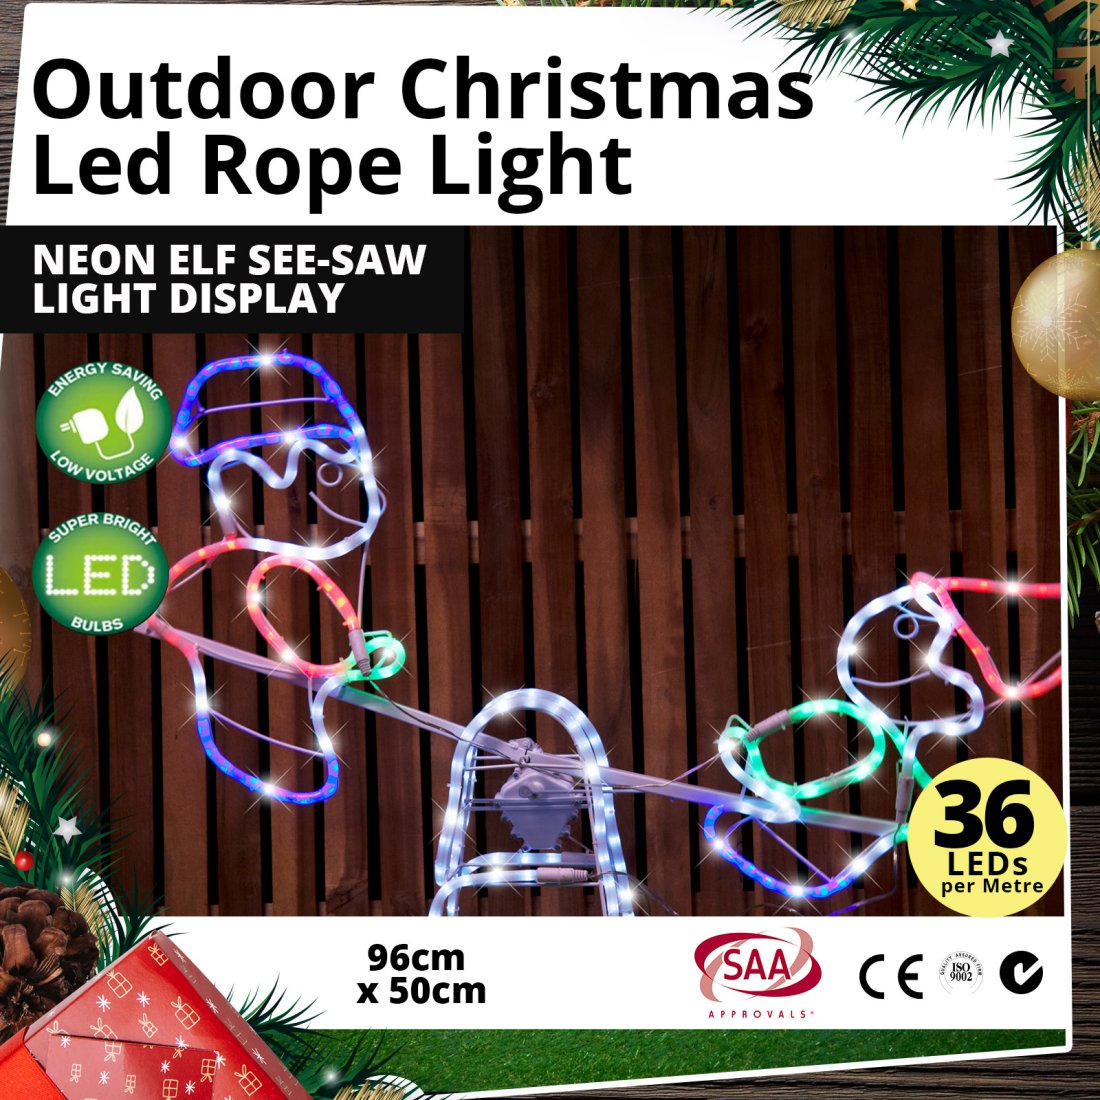 Outdoor LED Rope Light Neon Elf See-Saw Christmas Light Display